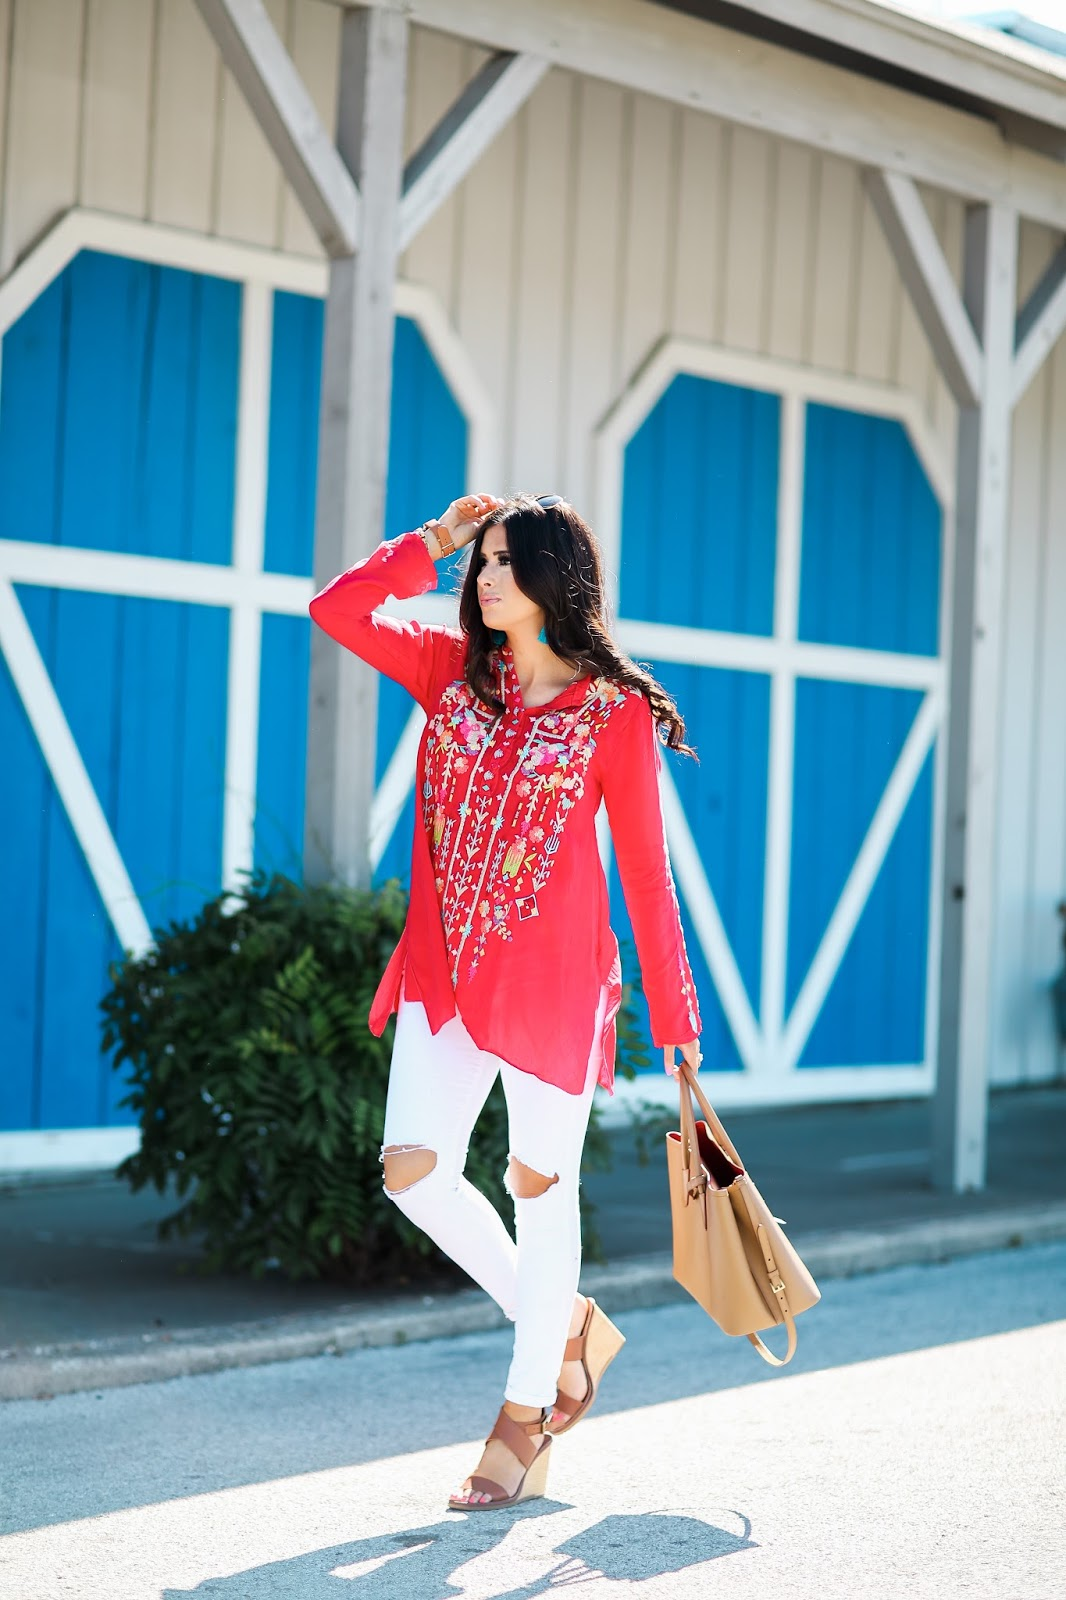 johnny was embroidered top, H&M tassel earrings, brand white distressed denim, emily gemma, the sweetest thing, tulsa fashion blog, prada camel double tote, cinco de mayo outfit idea, summer outfit idea pinterest, summer fashion pinterest